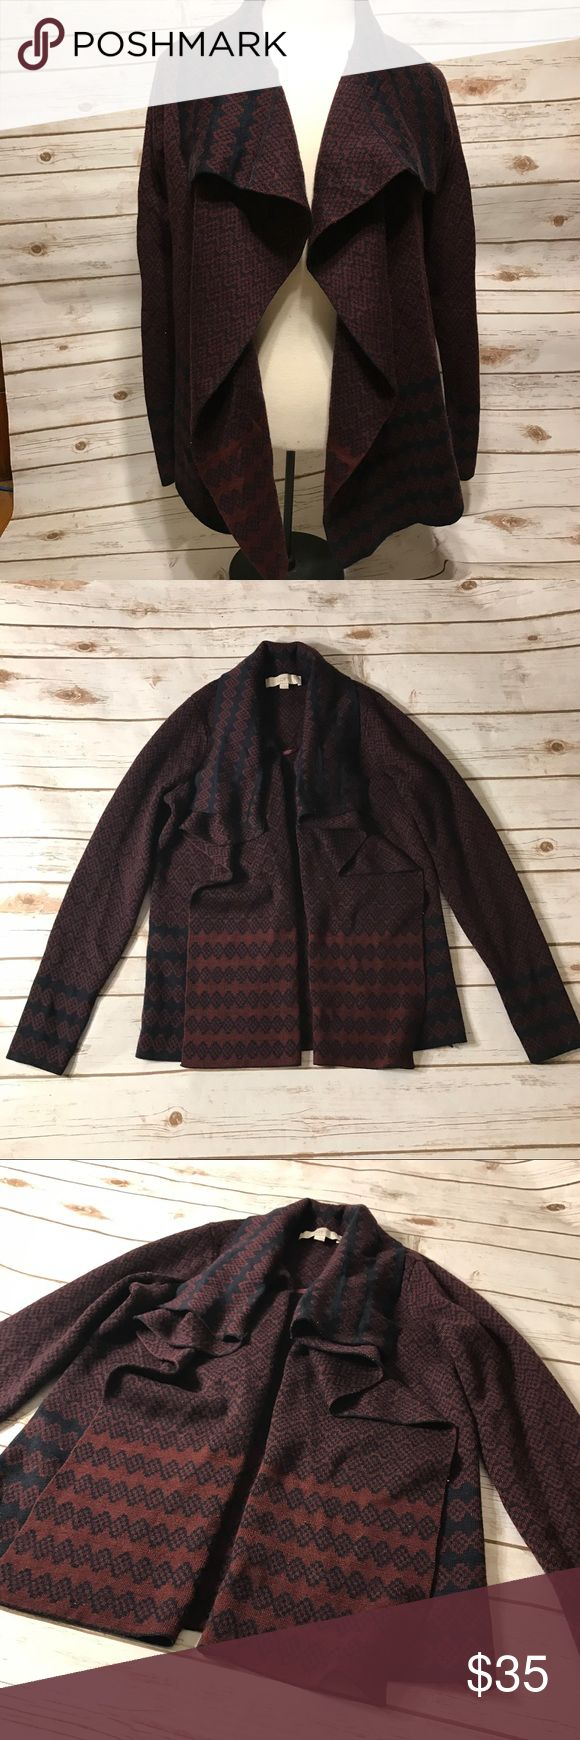 """Anne Taylor Loft Print Cardigan Small Anne Taylor print Cardigan size small. No rips or stains. Measurements for flat lay: shoulder to shoulder 15"""" armpit to armpit 19"""" Top to bottom 26"""" LOFT Sweaters Cardigans"""